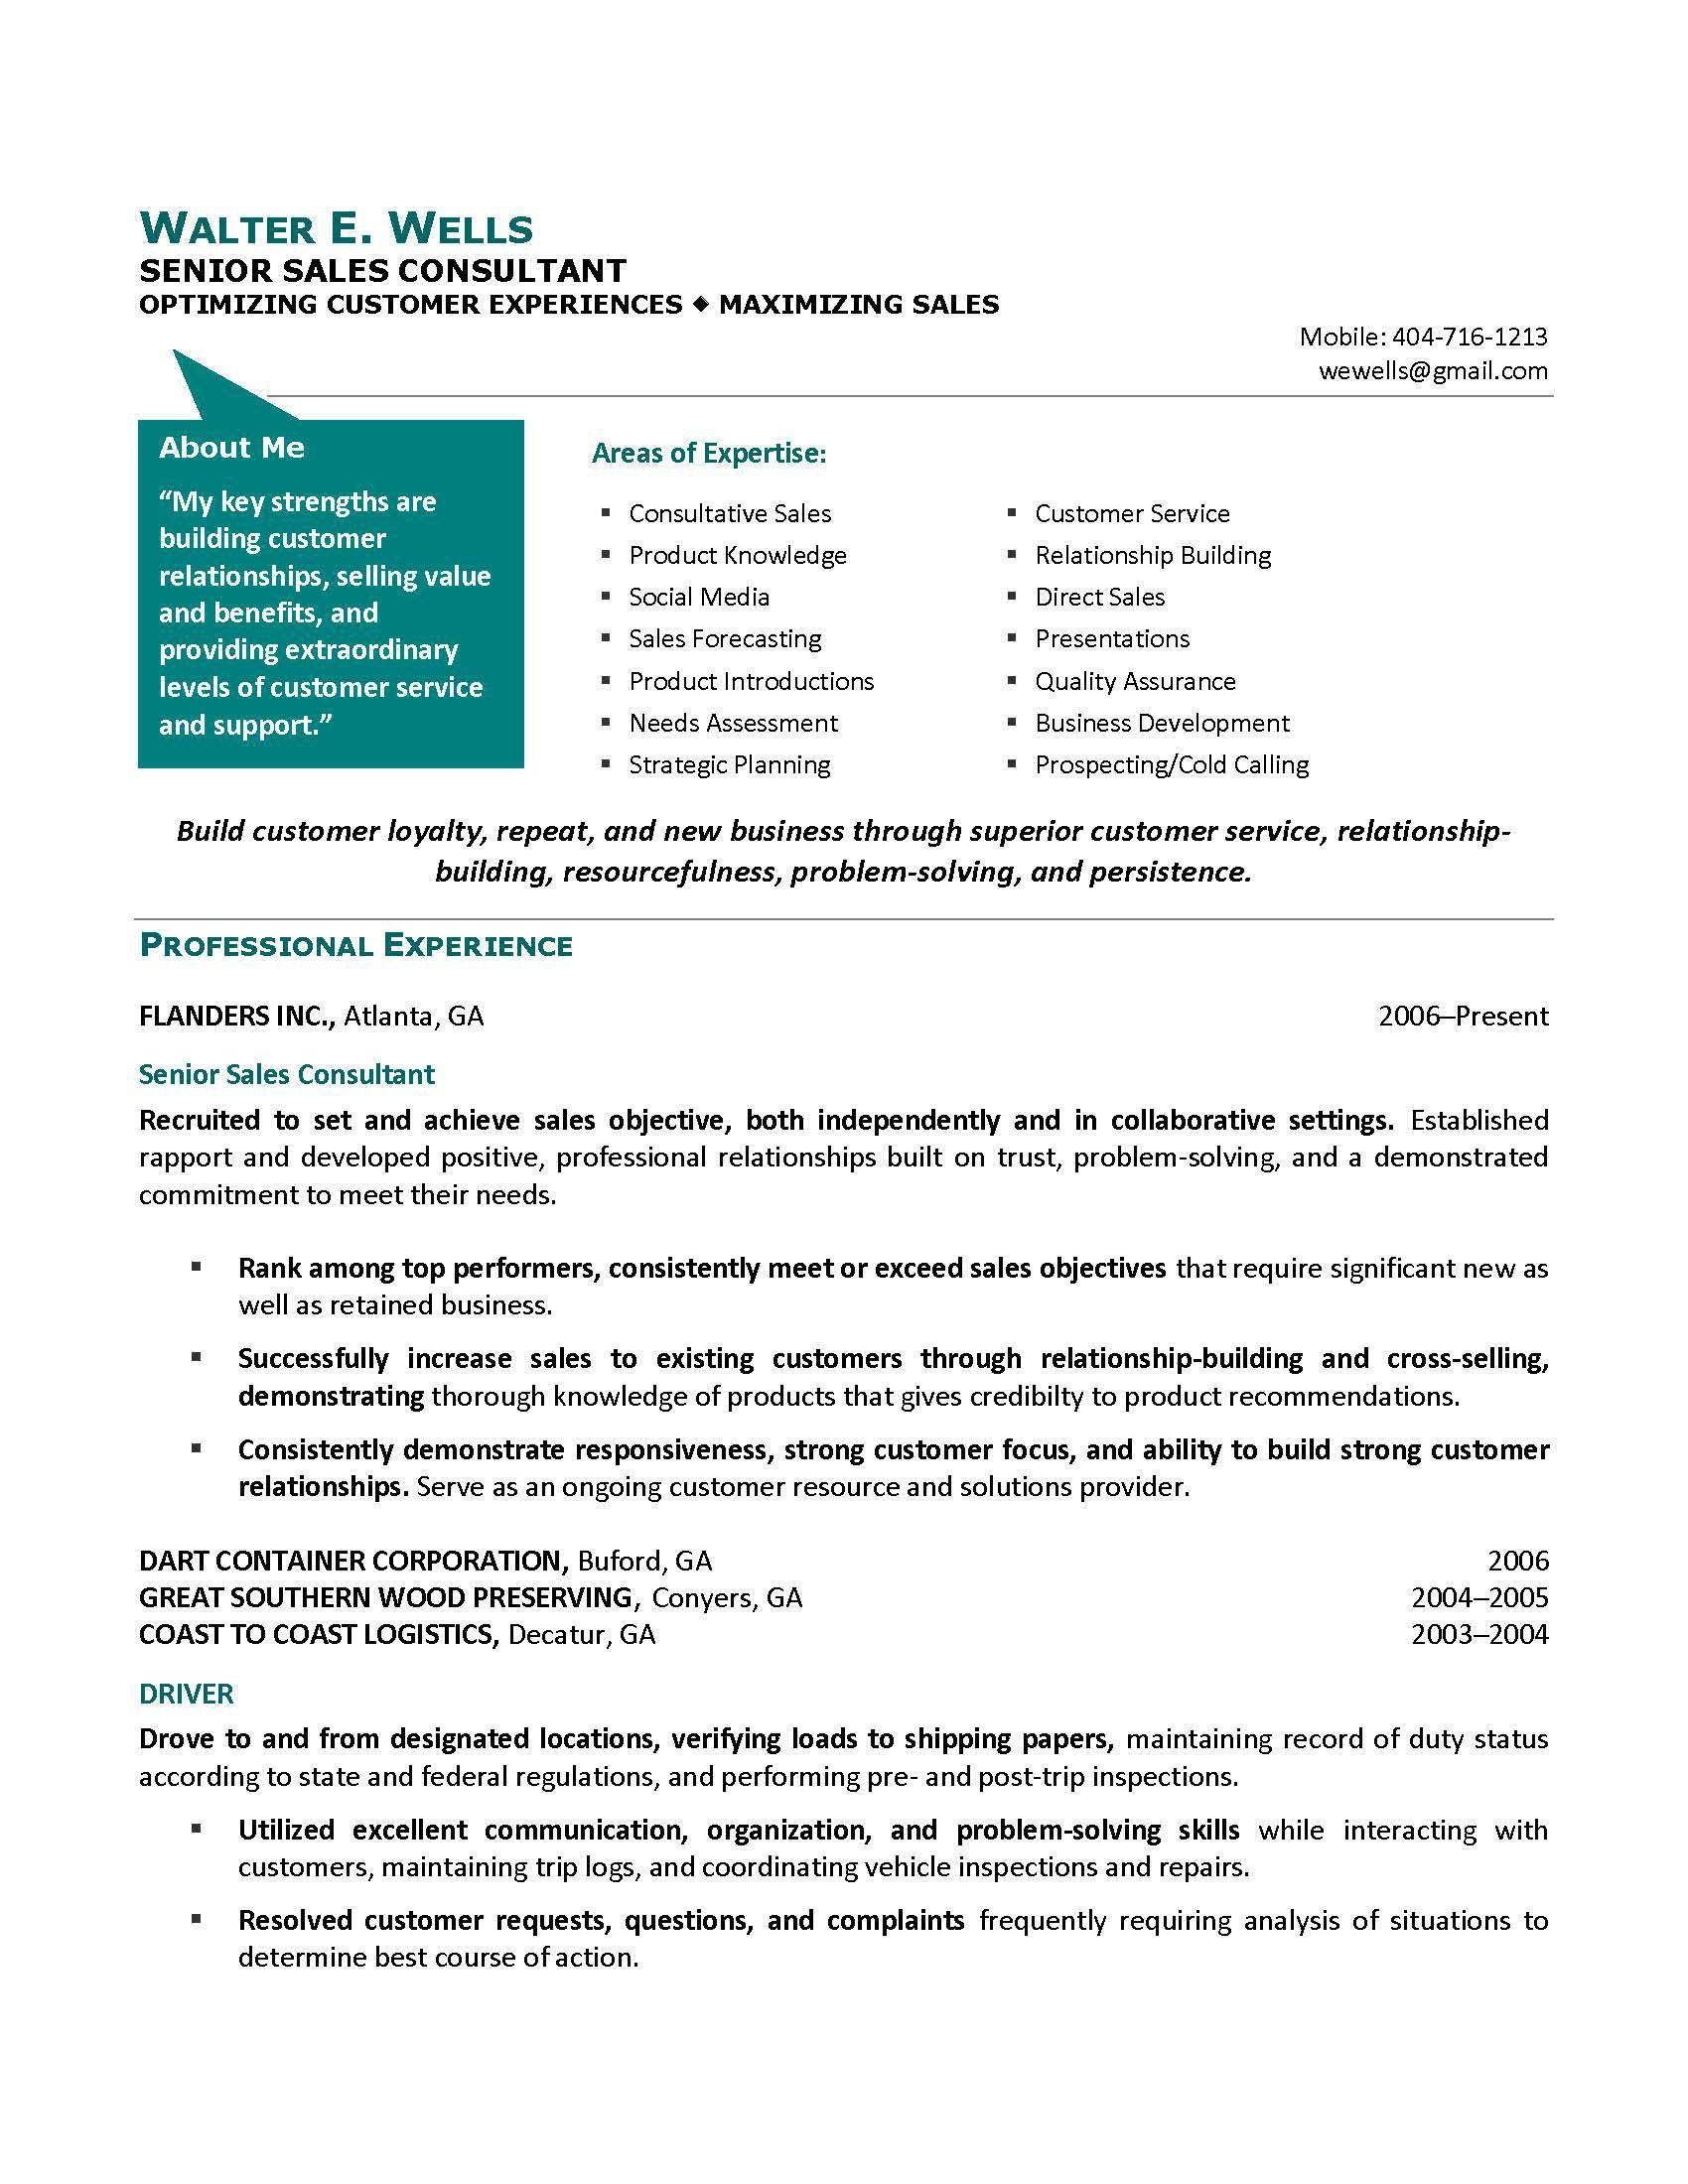 resume samples elite writing relationship building skills services sample for experienced Resume Resume Relationship Building